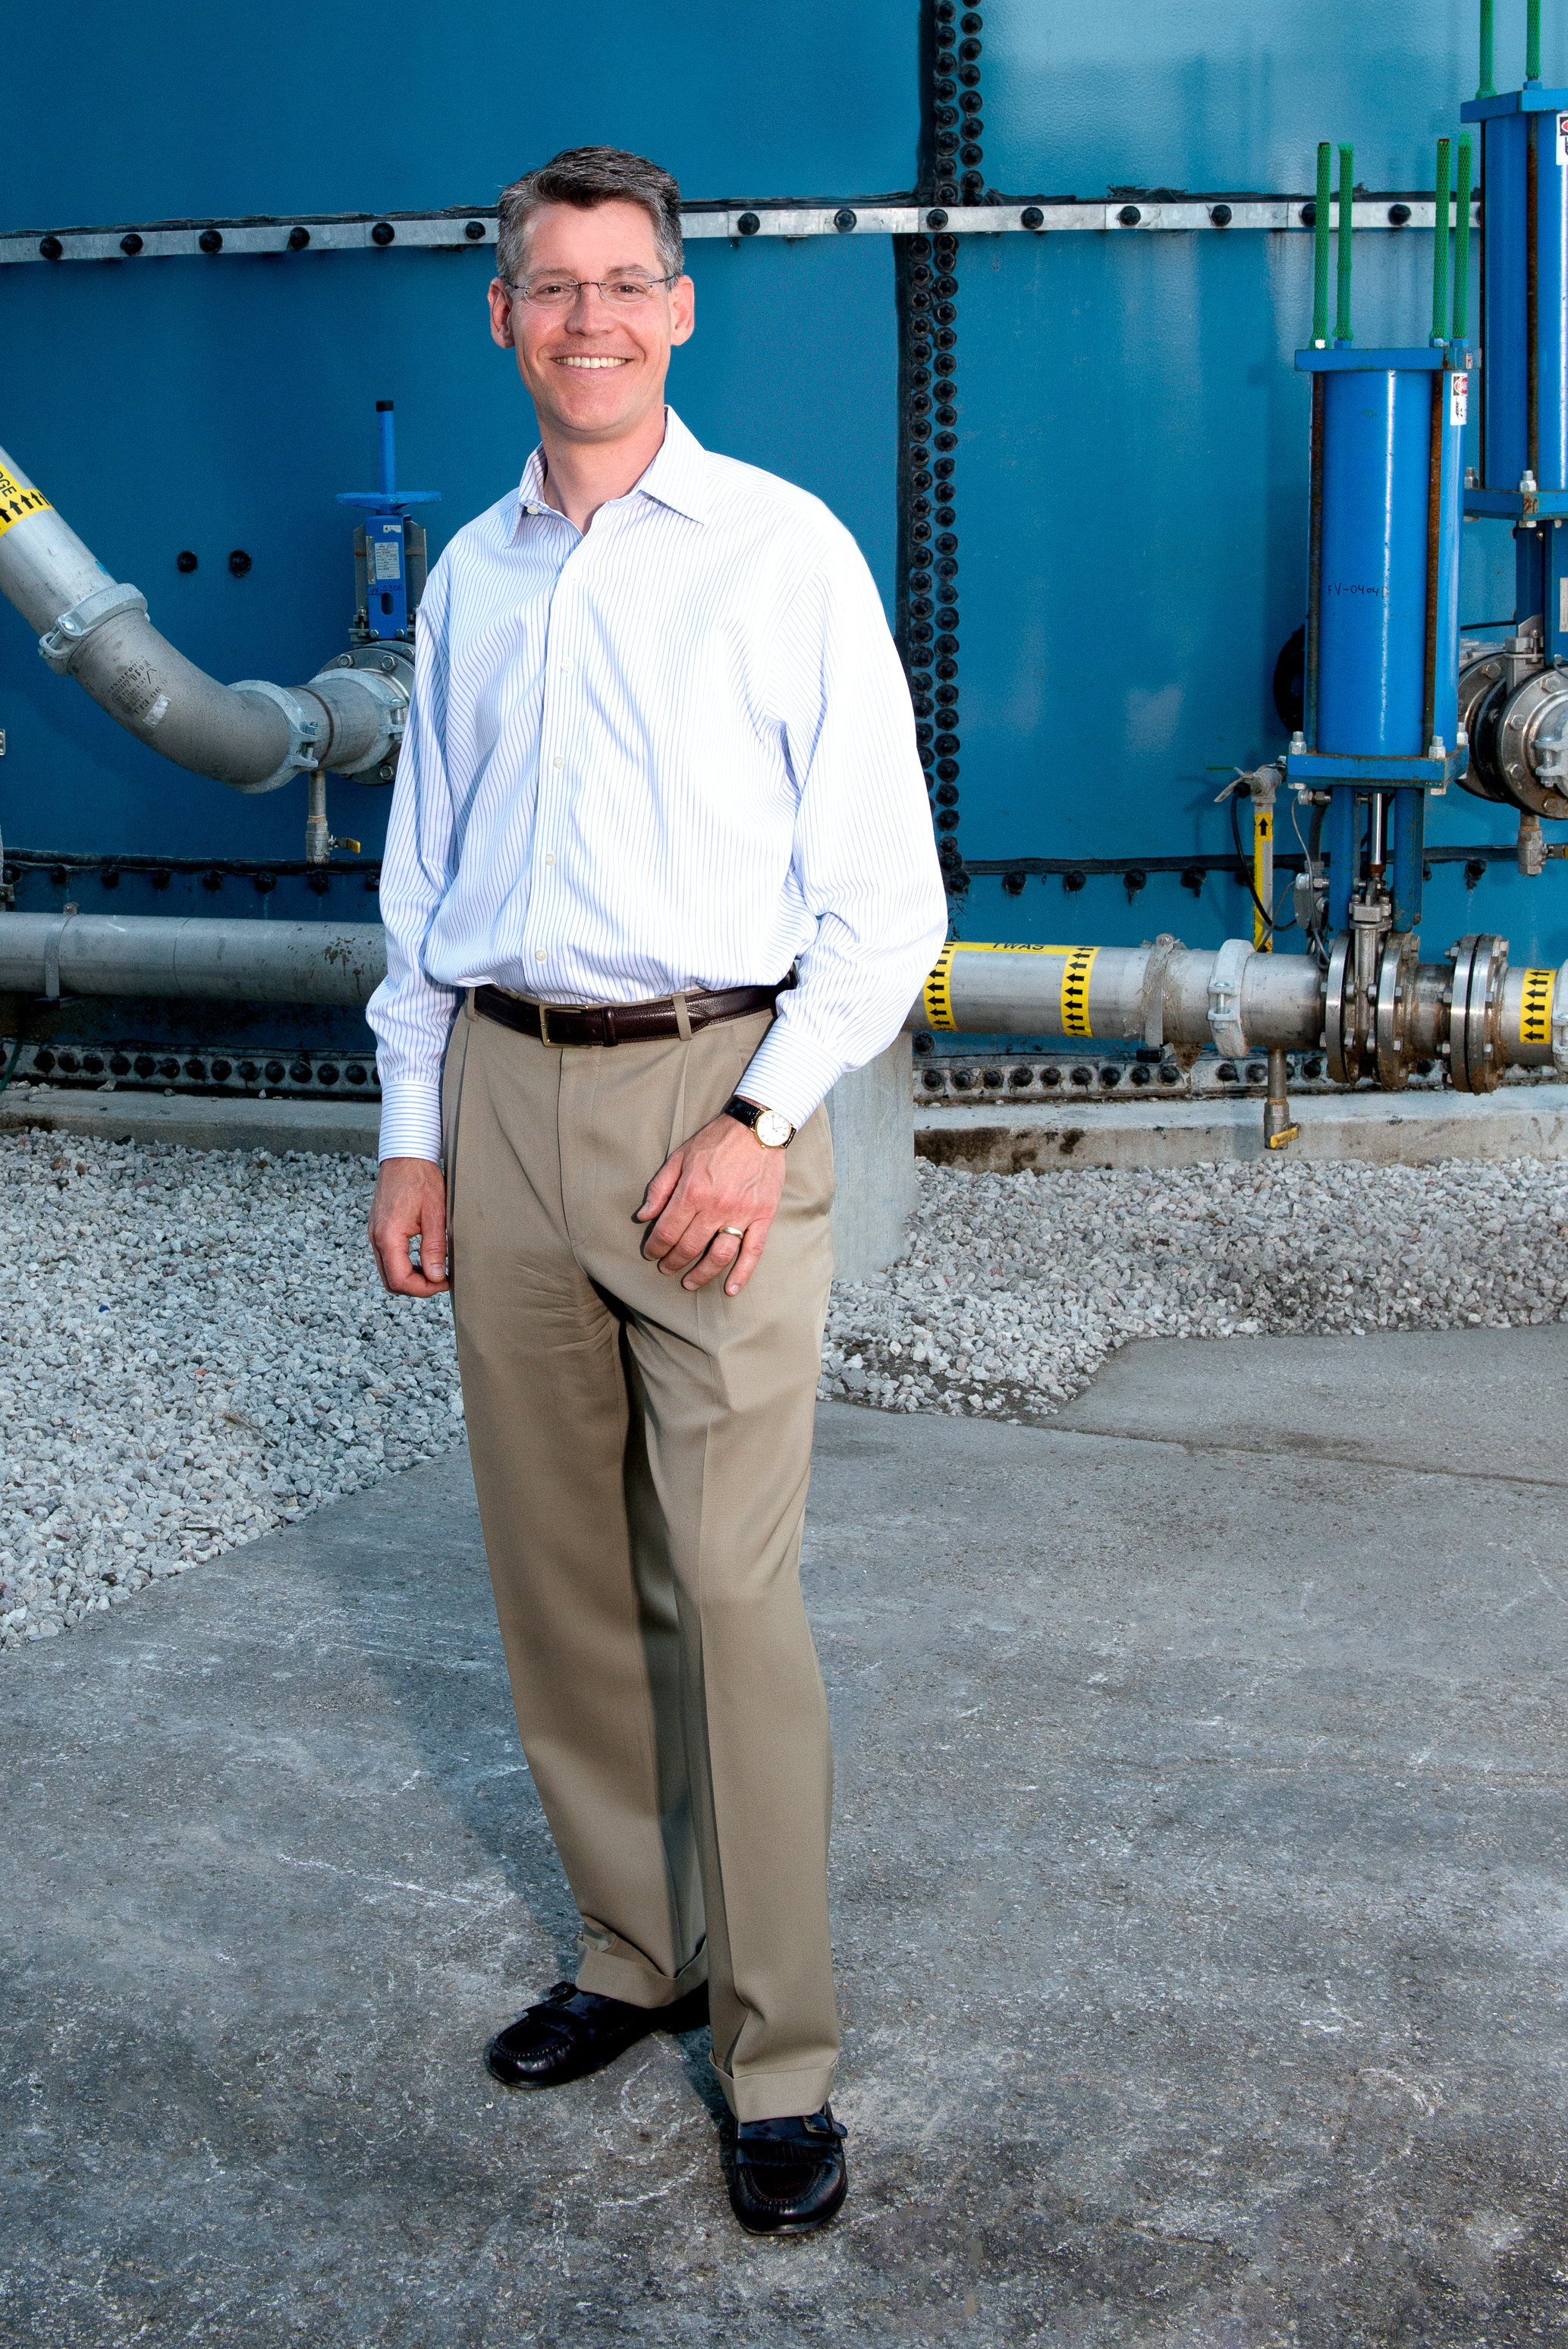 Harvest Power Announces $20 Million in Funding | Business Wire